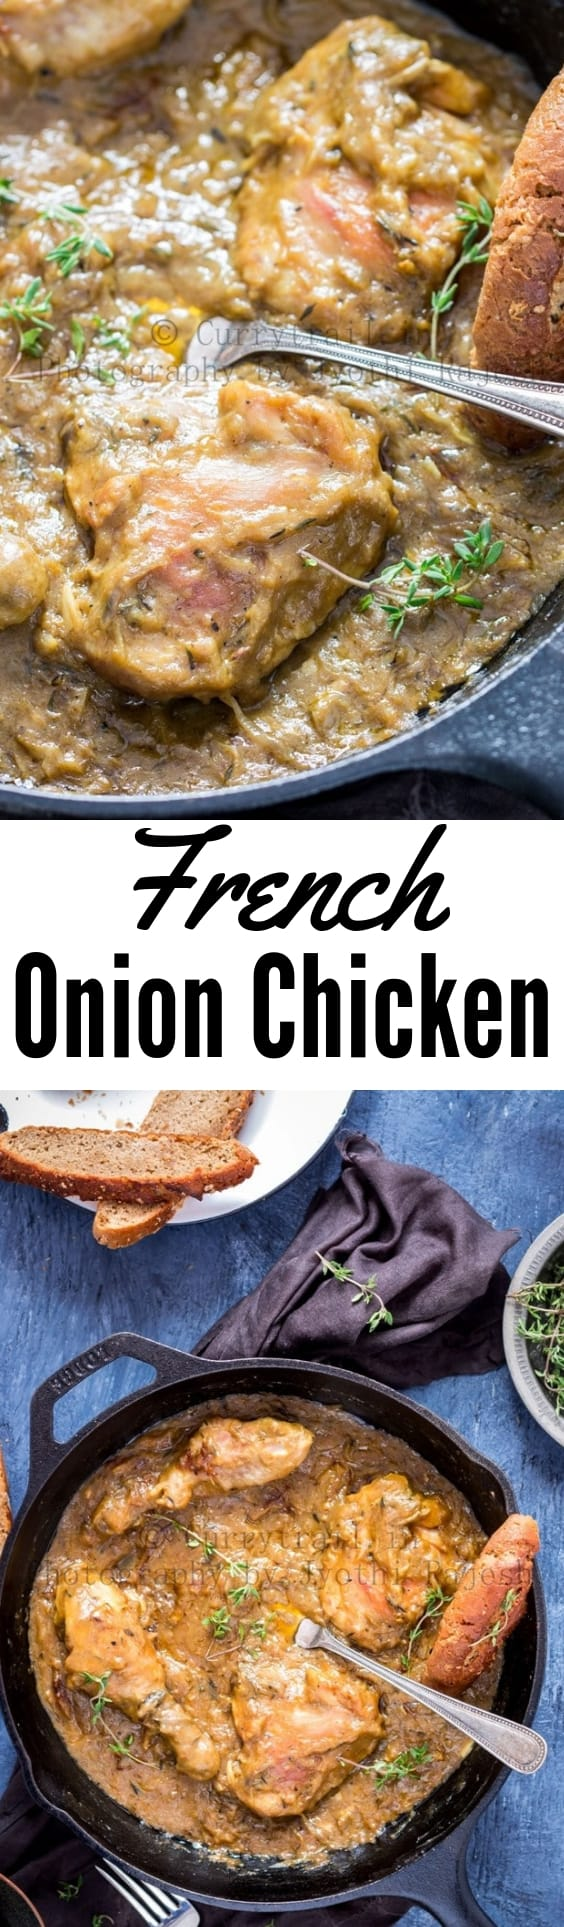 French Onion Chicken Recipe Pin with text overlay